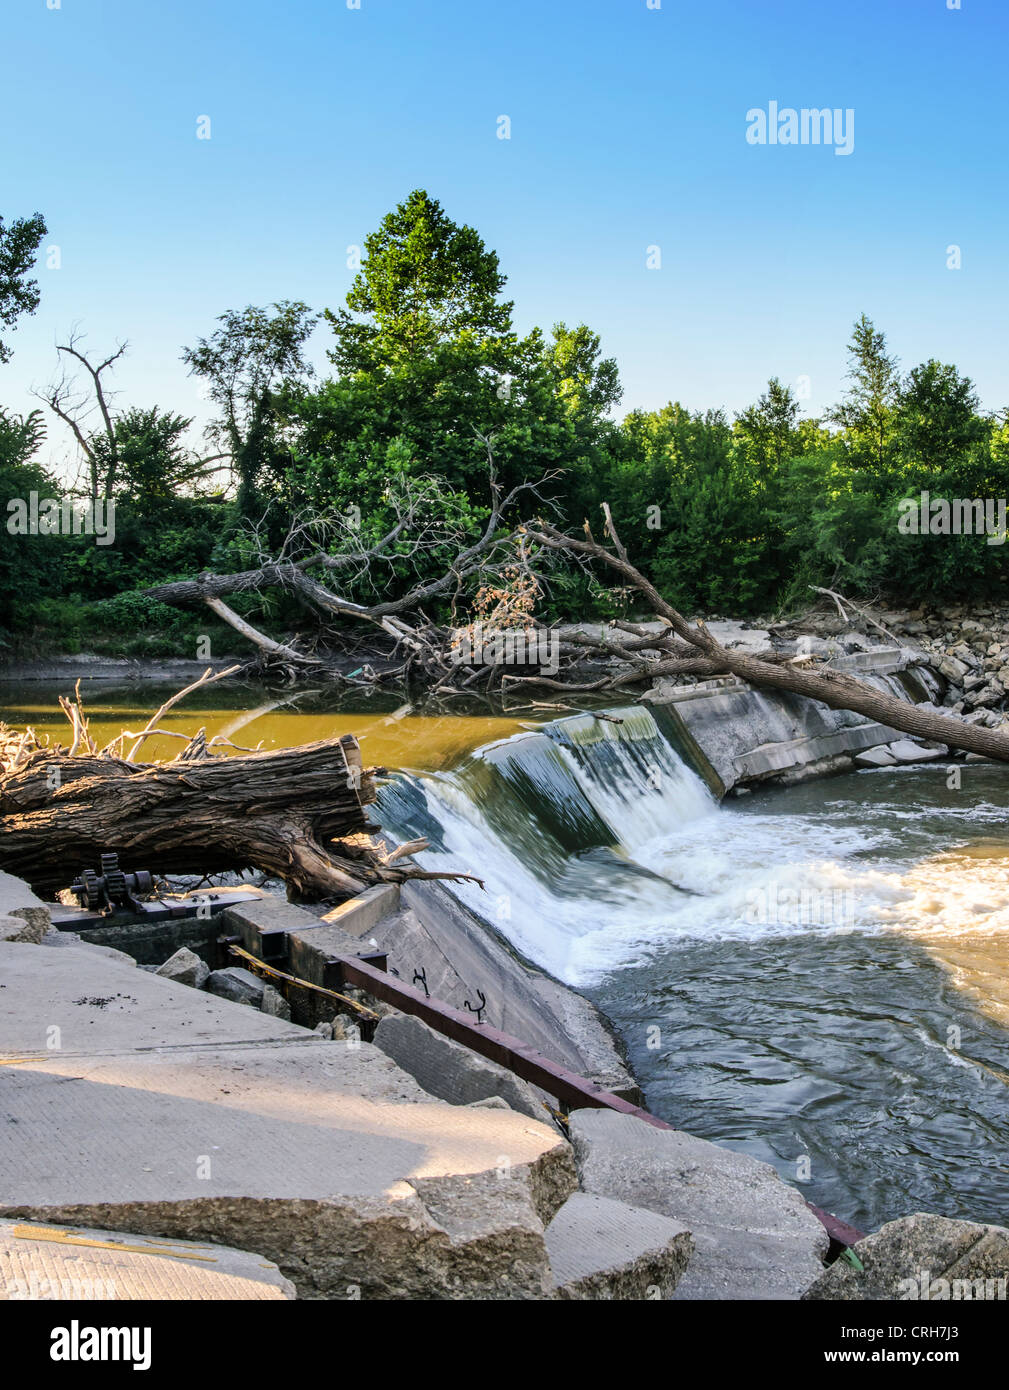 The Cottonwood Falls Dam on the Cottonwood River in Kansas, USA - Stock Image